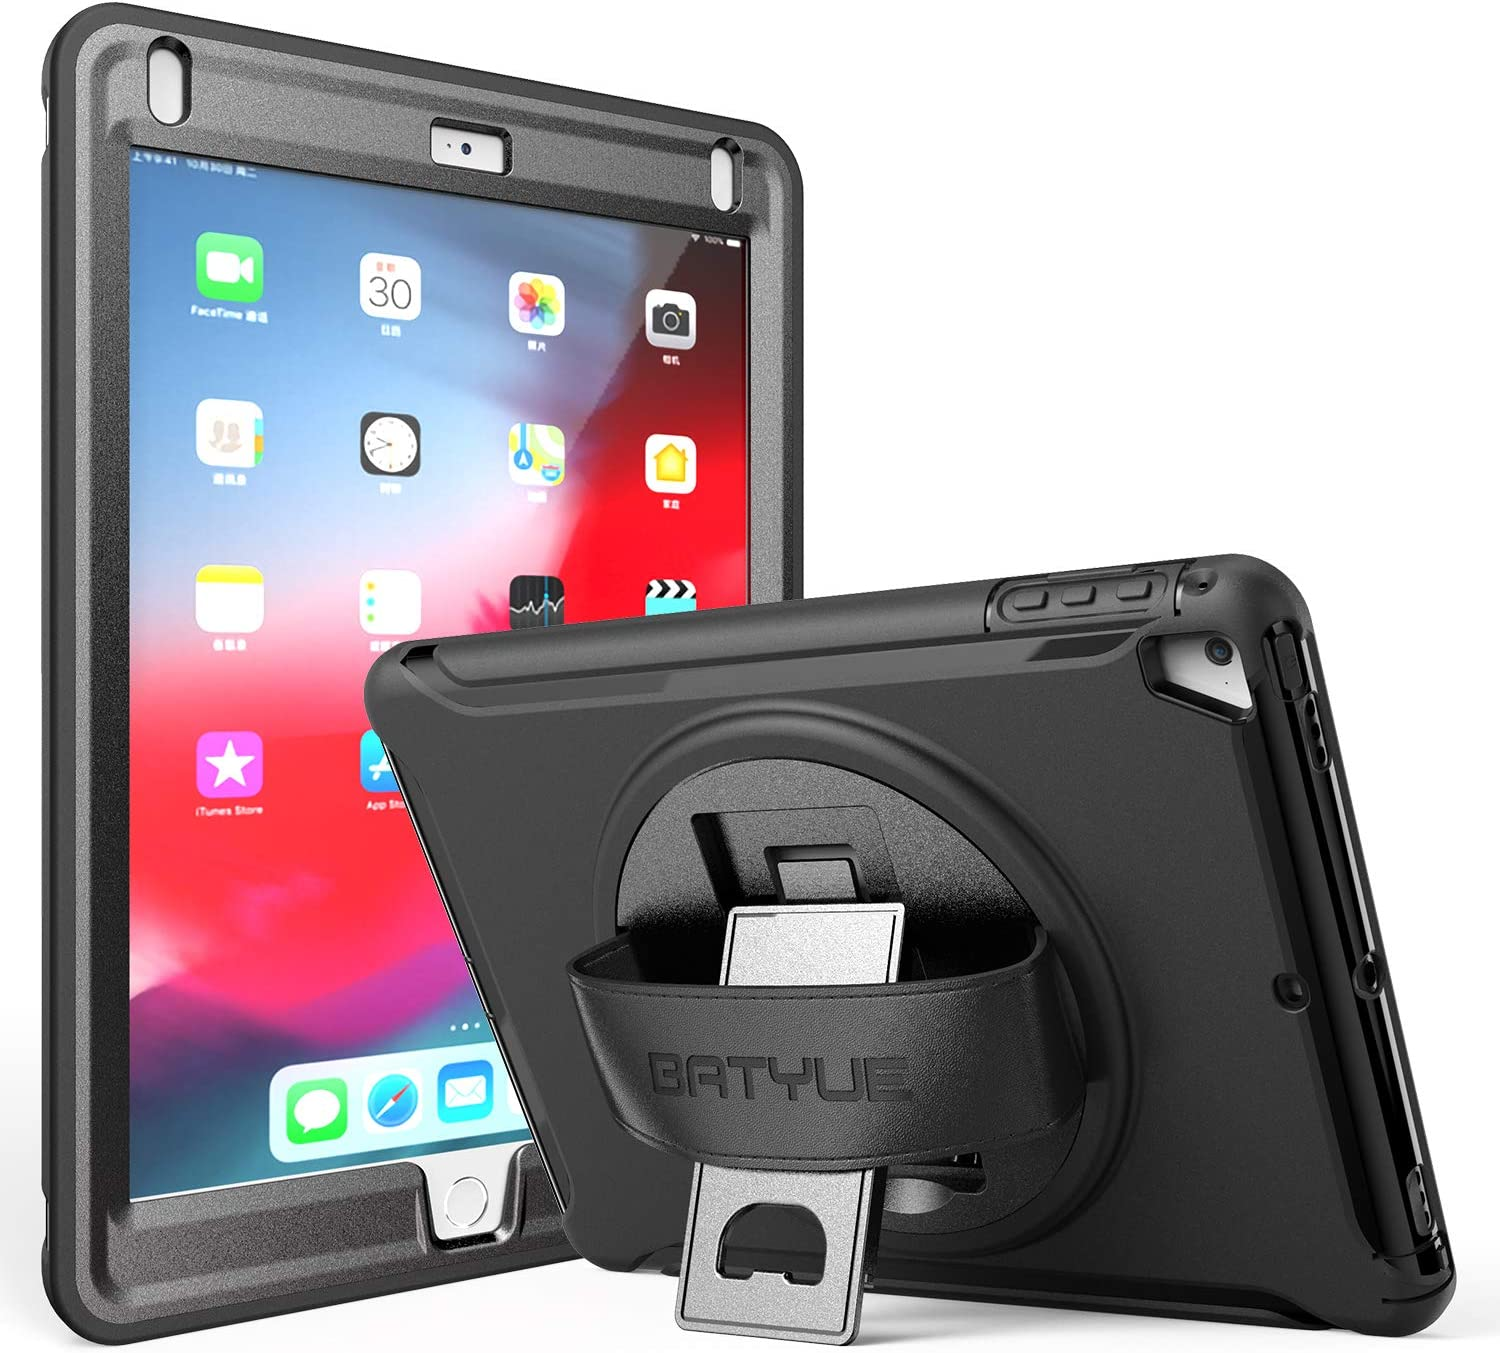 BATYUE iPad 9.7 Case 2018 iPad 6th Generation Case/ 2017 iPad 5th Generation Case, 3 Layer Heavy Duty Rugged iPad Air 2 Case/ iPad Air Case w/360° Swivel Stand + Hand Strap for iPad Pro 9.7 Case Black